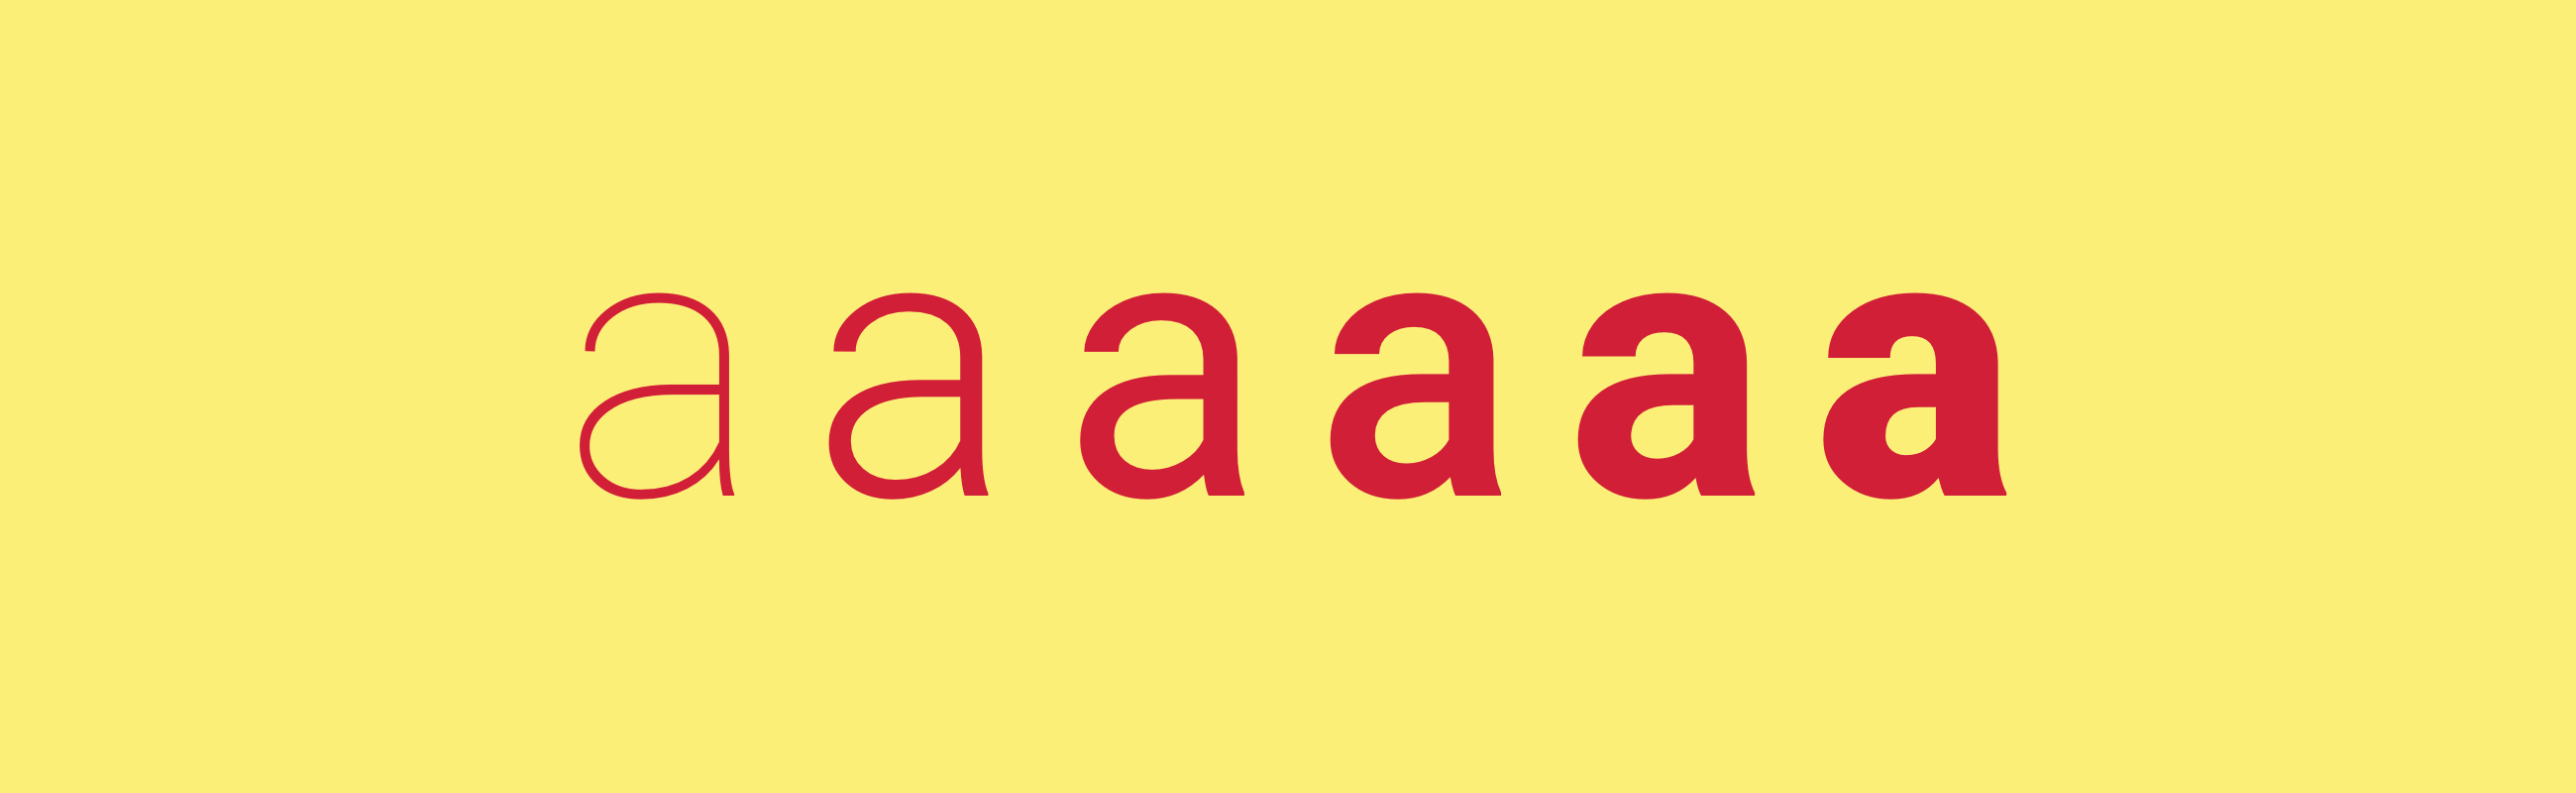 What should designers know about the Roboto typeface?